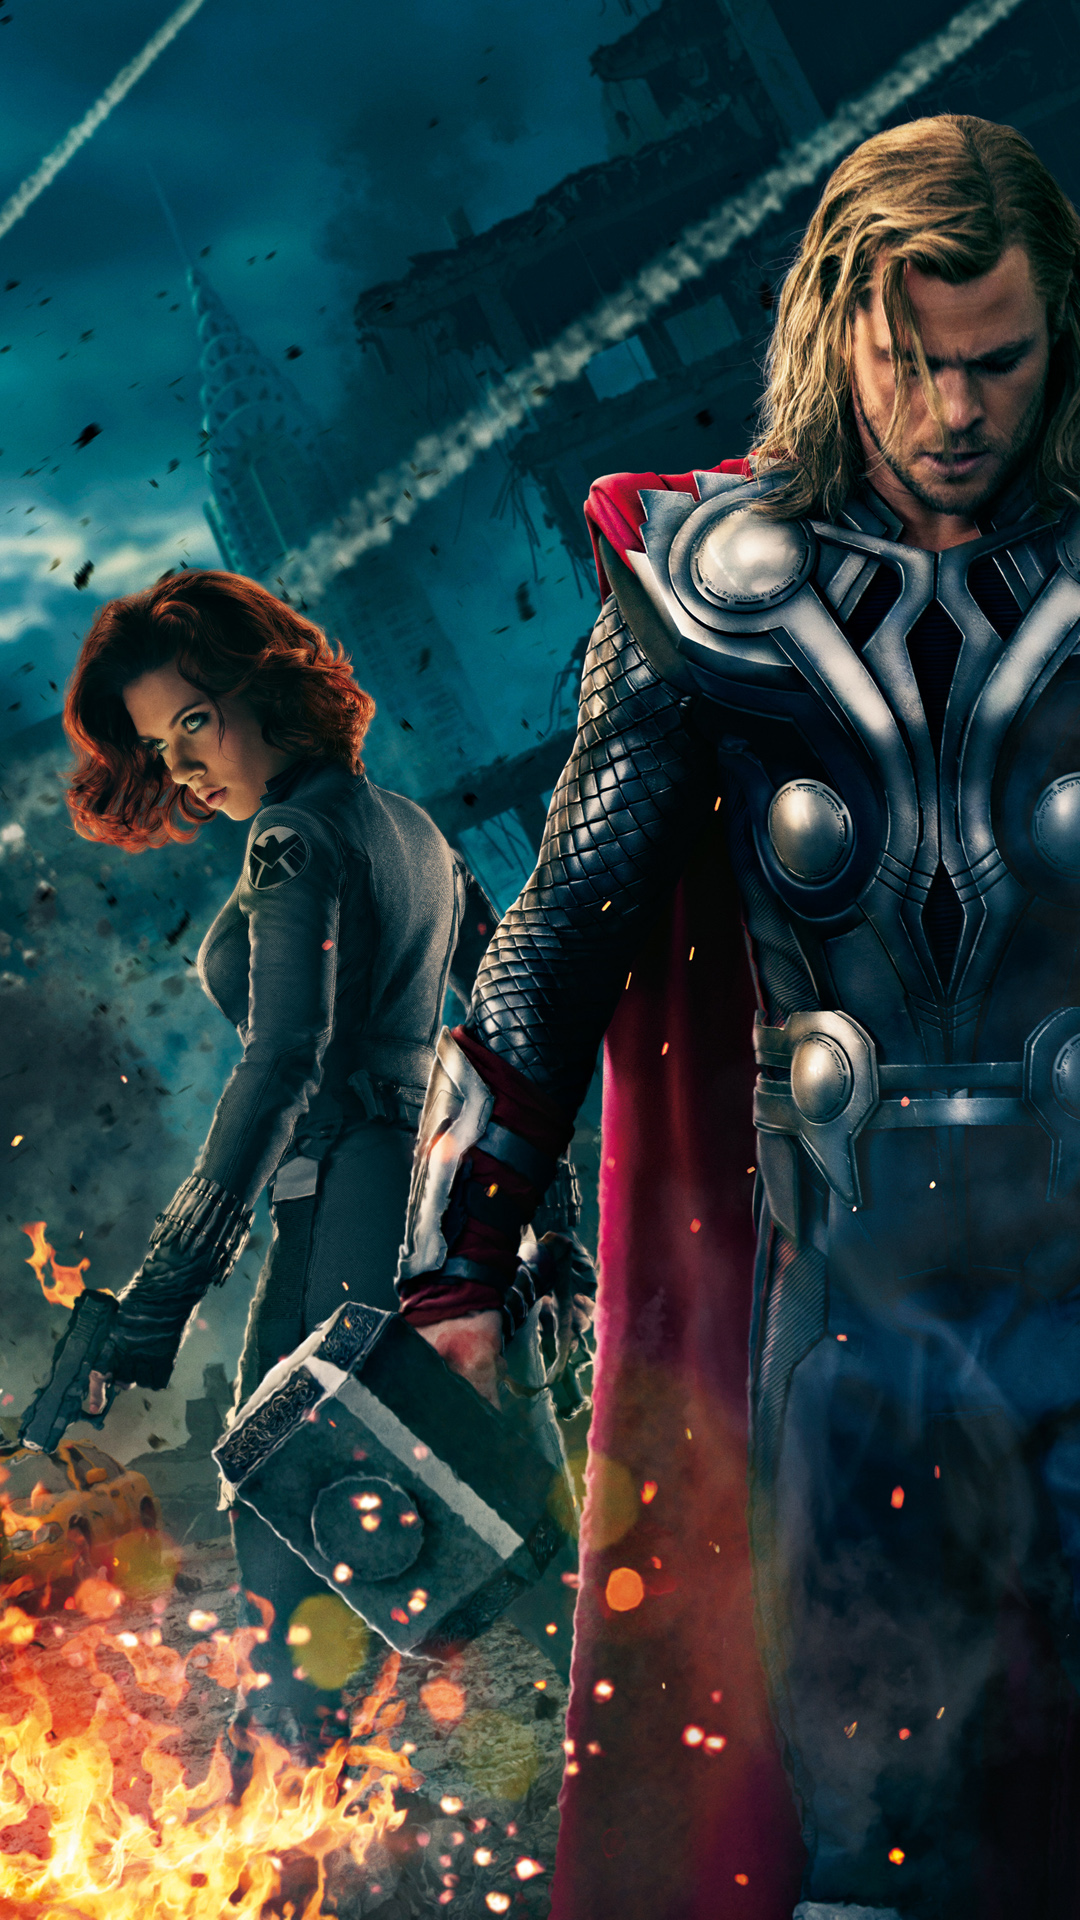 The Avengers Thor and Black Widow